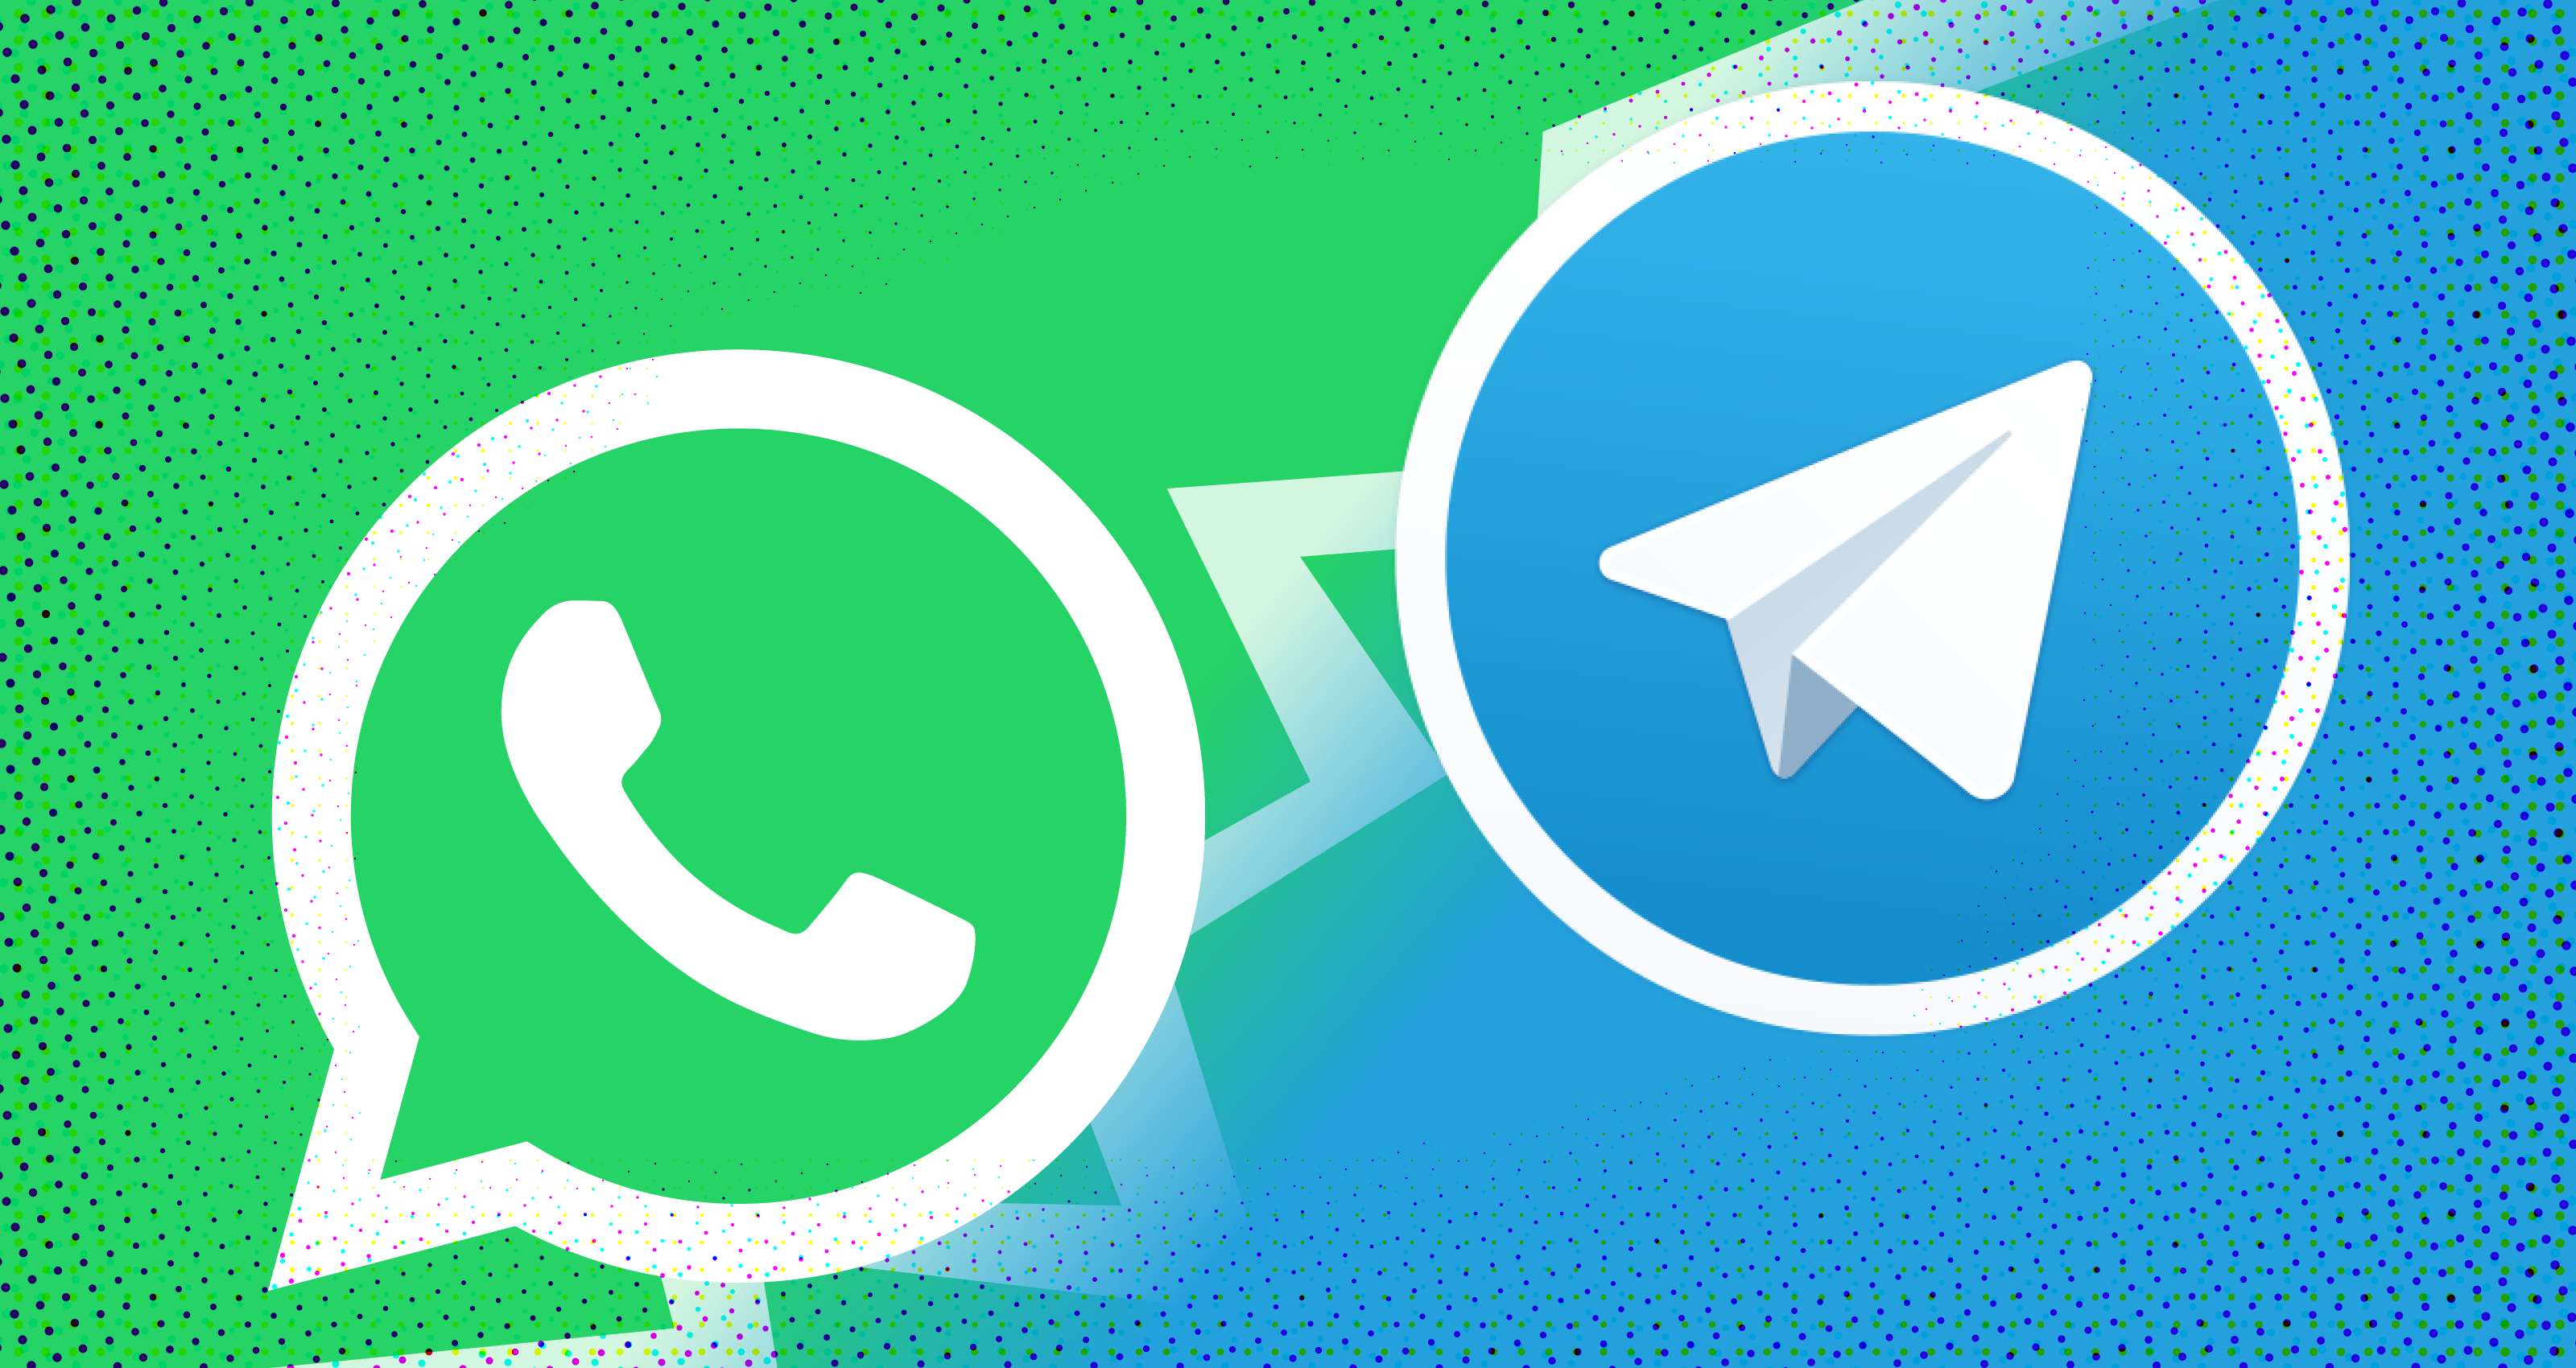 WhatsApp revamps Groups to fight Telegram		 		 	Josh Constine         @	       	7 hours